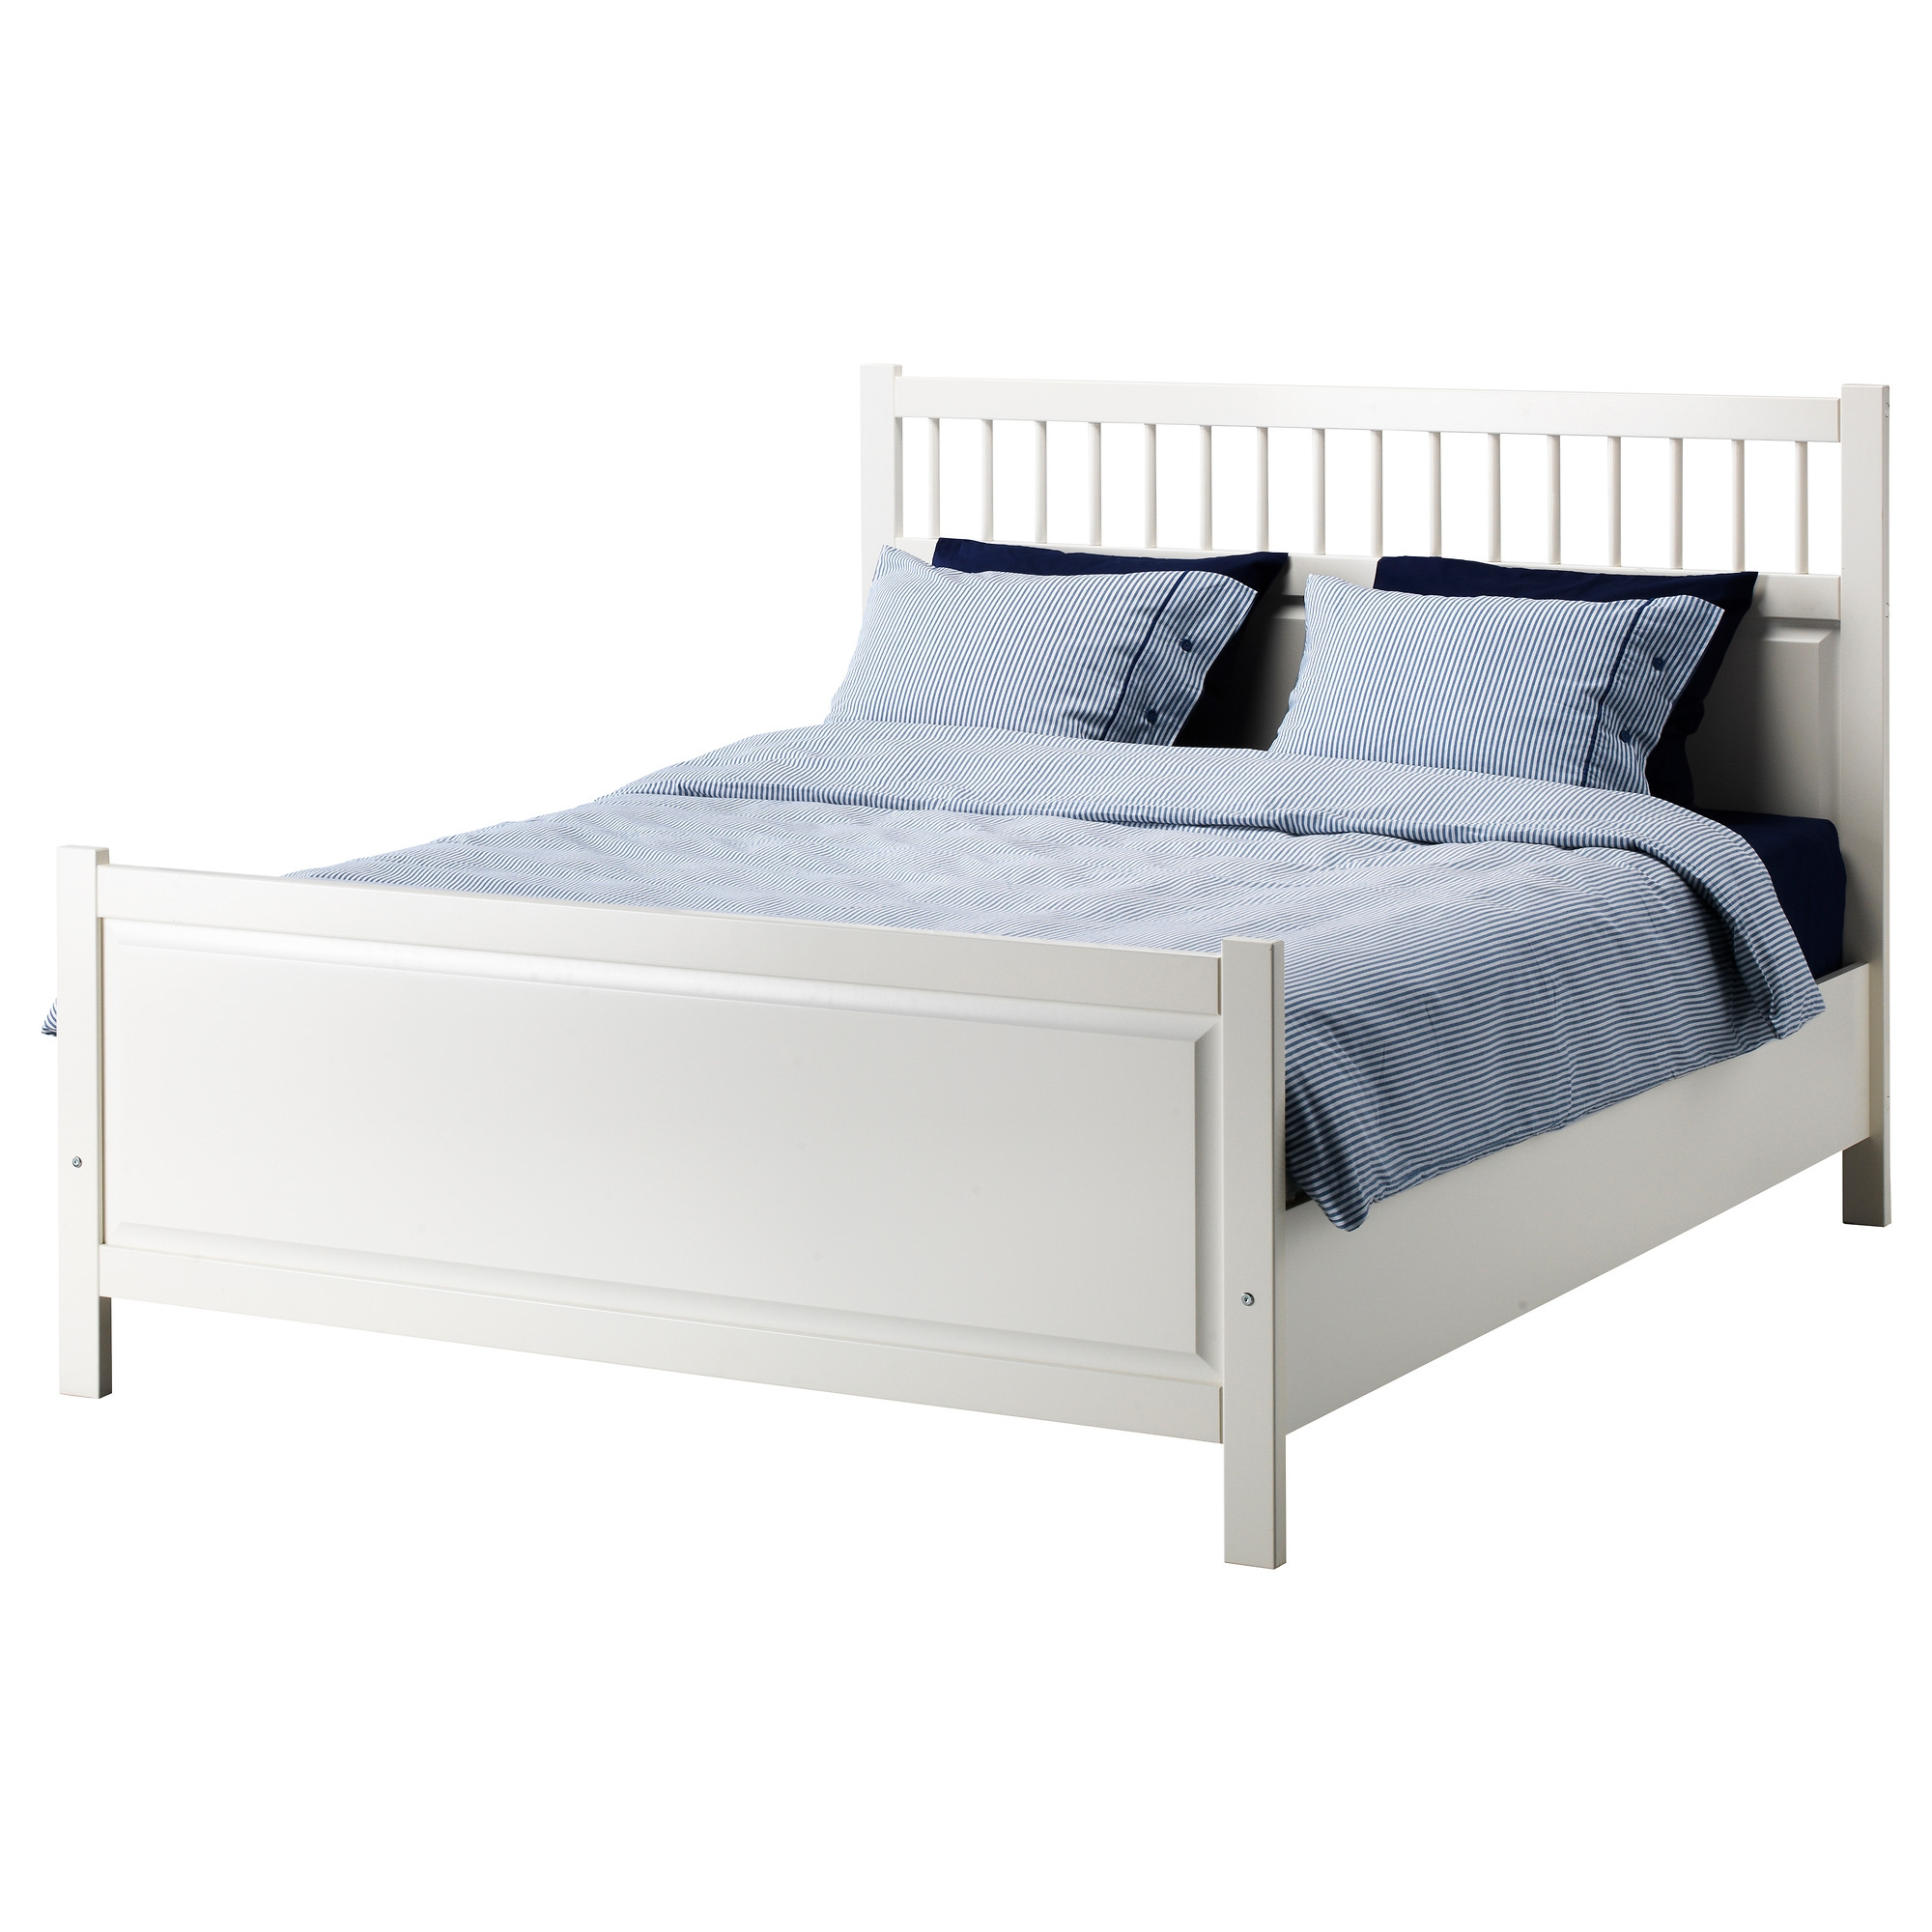 Queen Size Bed Frame Headboard And Footboard